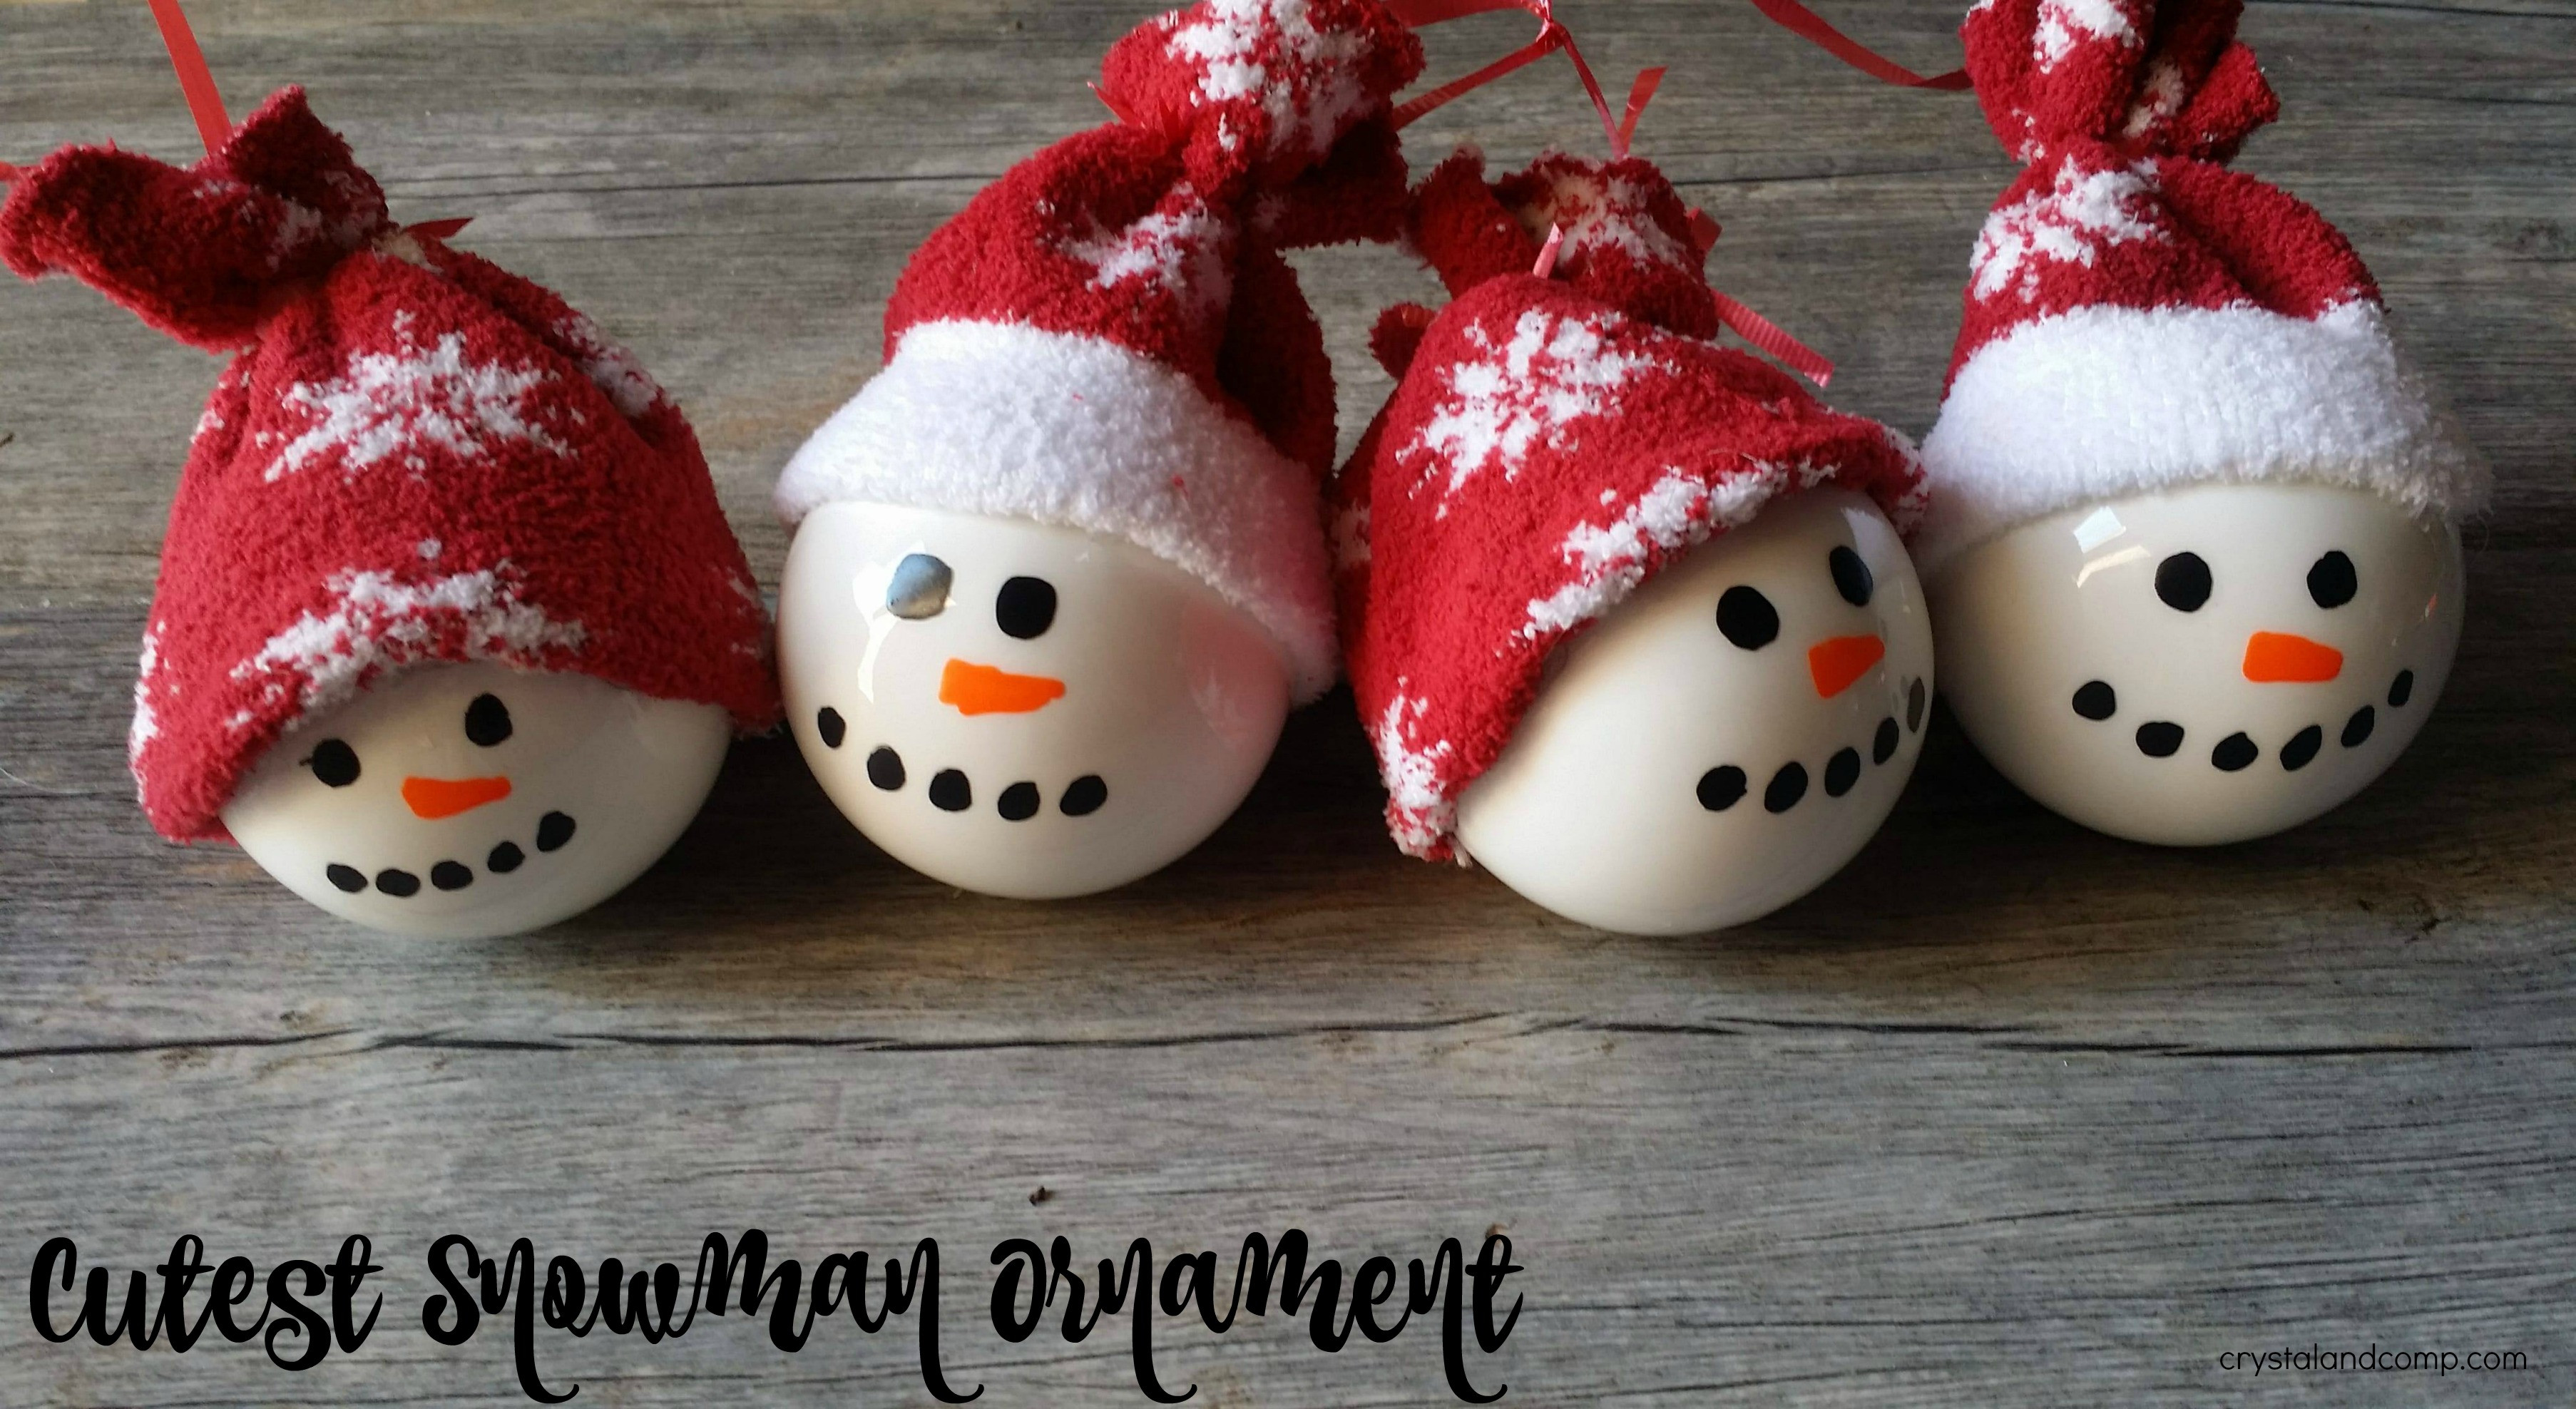 Best ideas about DIY Snowman Ornaments . Save or Pin Homemade Snowman Ornament Now.